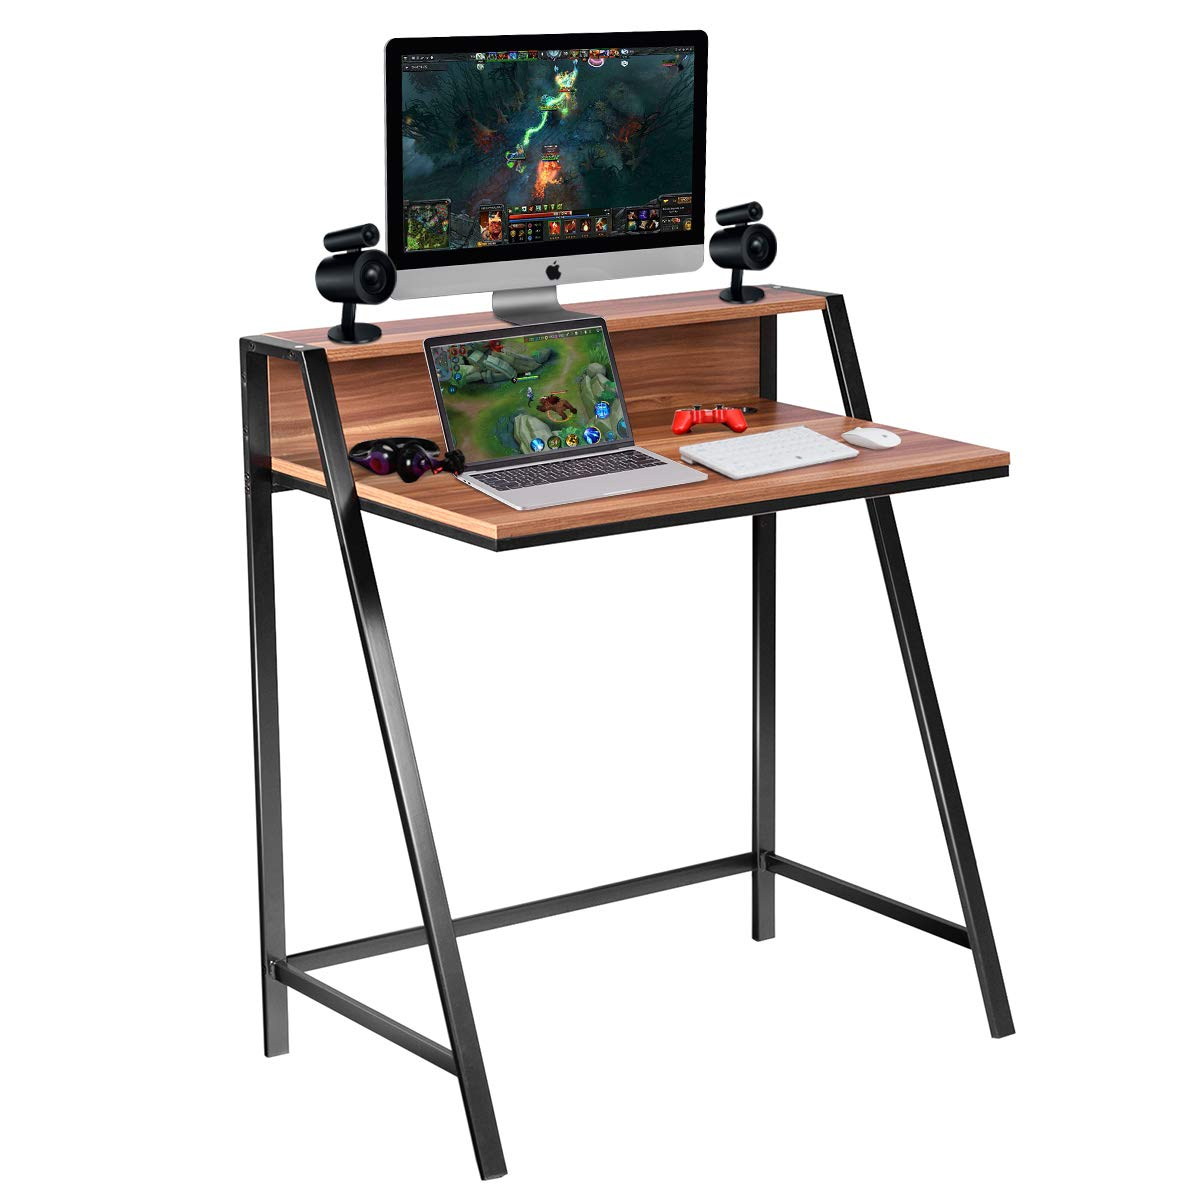 Tangkula Small Gaming Desk, 2 Tier Computer Desk, Home Office Wood Sturdy Frame Compact Writing Table for Small Place, Apartment Dom Office Furniture Sofa Bed Table, Study Writing Table by Tangkula